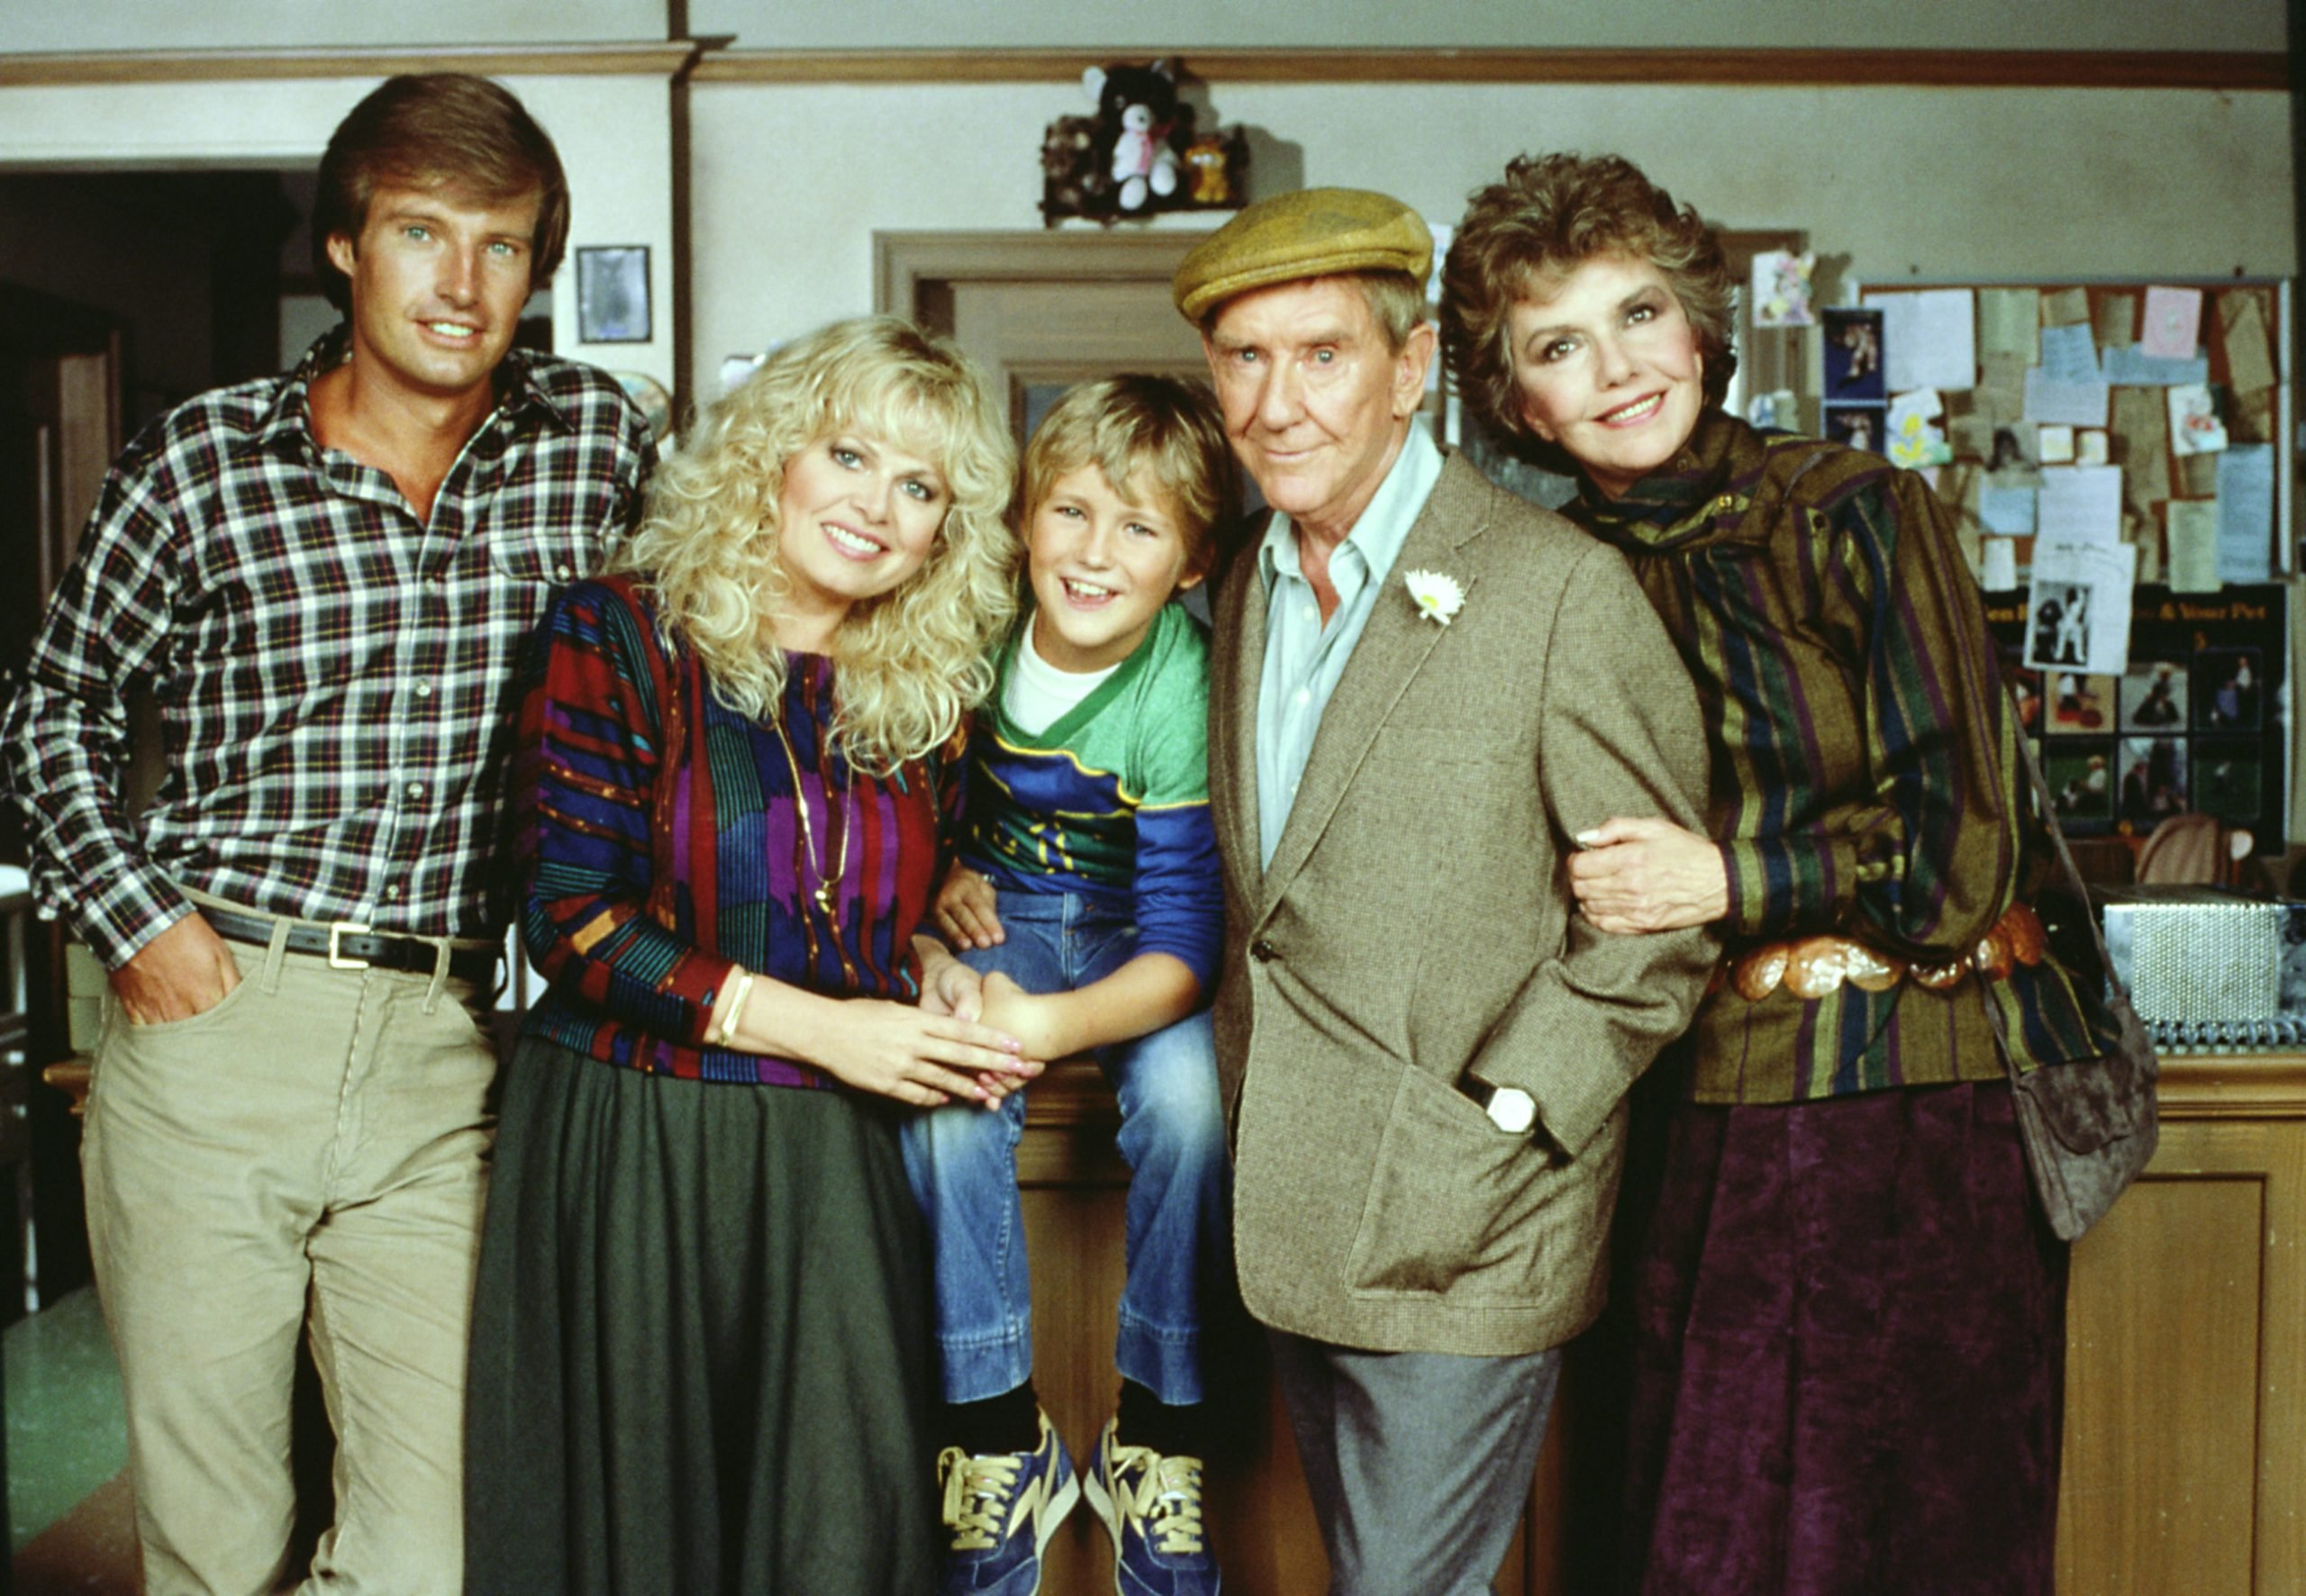 sally-struthers-burgess-meredith-and-the-cast-of-gloria